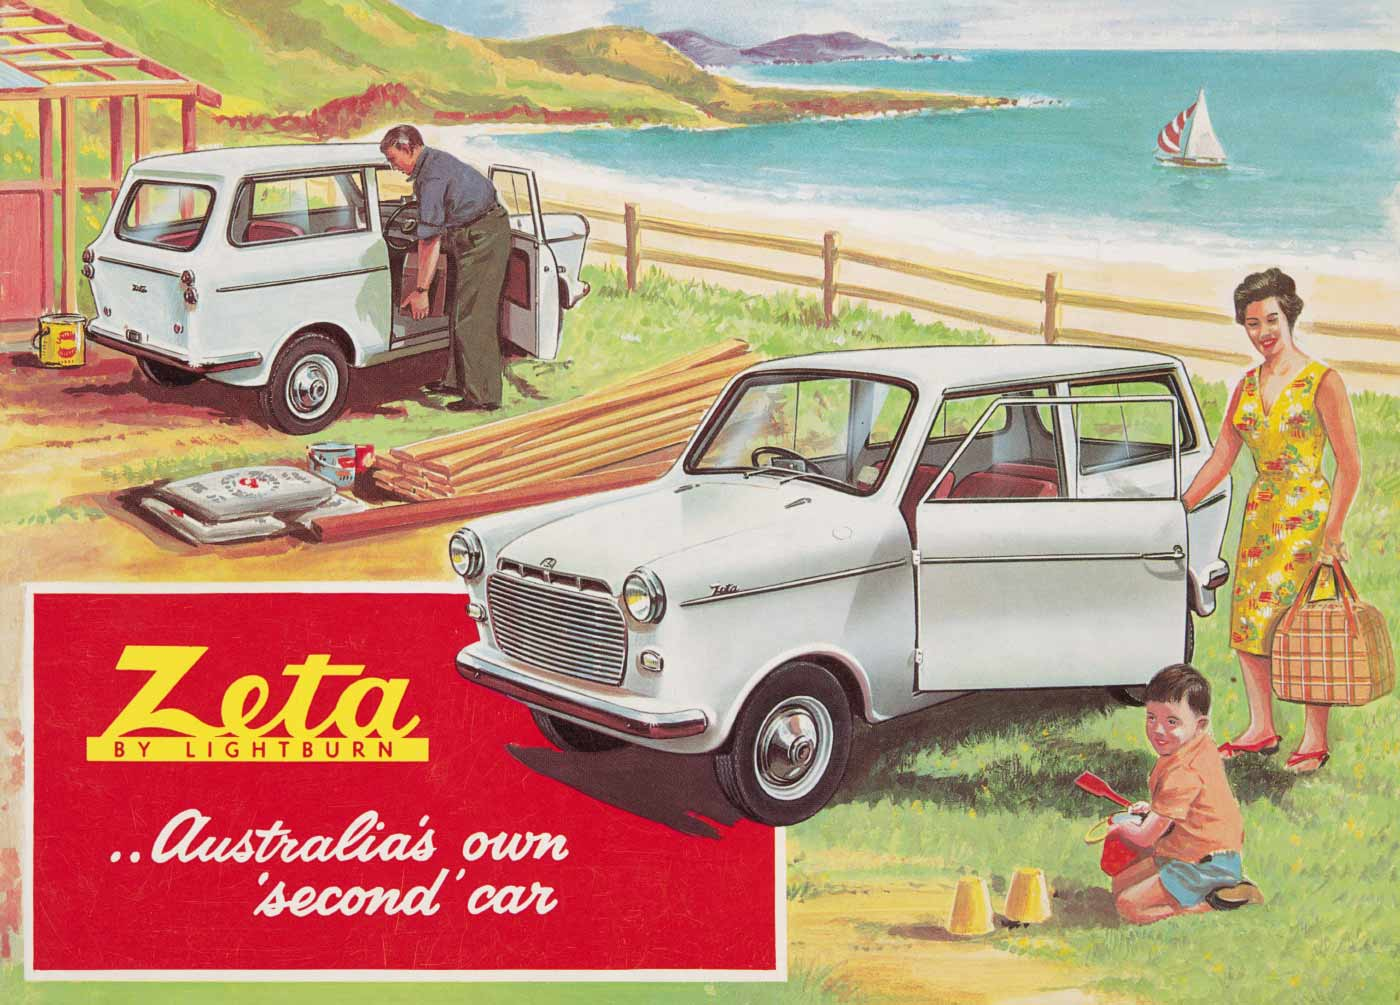 A coloured advertising brochure cover featuring two small grey motor cars, a man, a woman, and a child in a beach setting. - click to view larger image